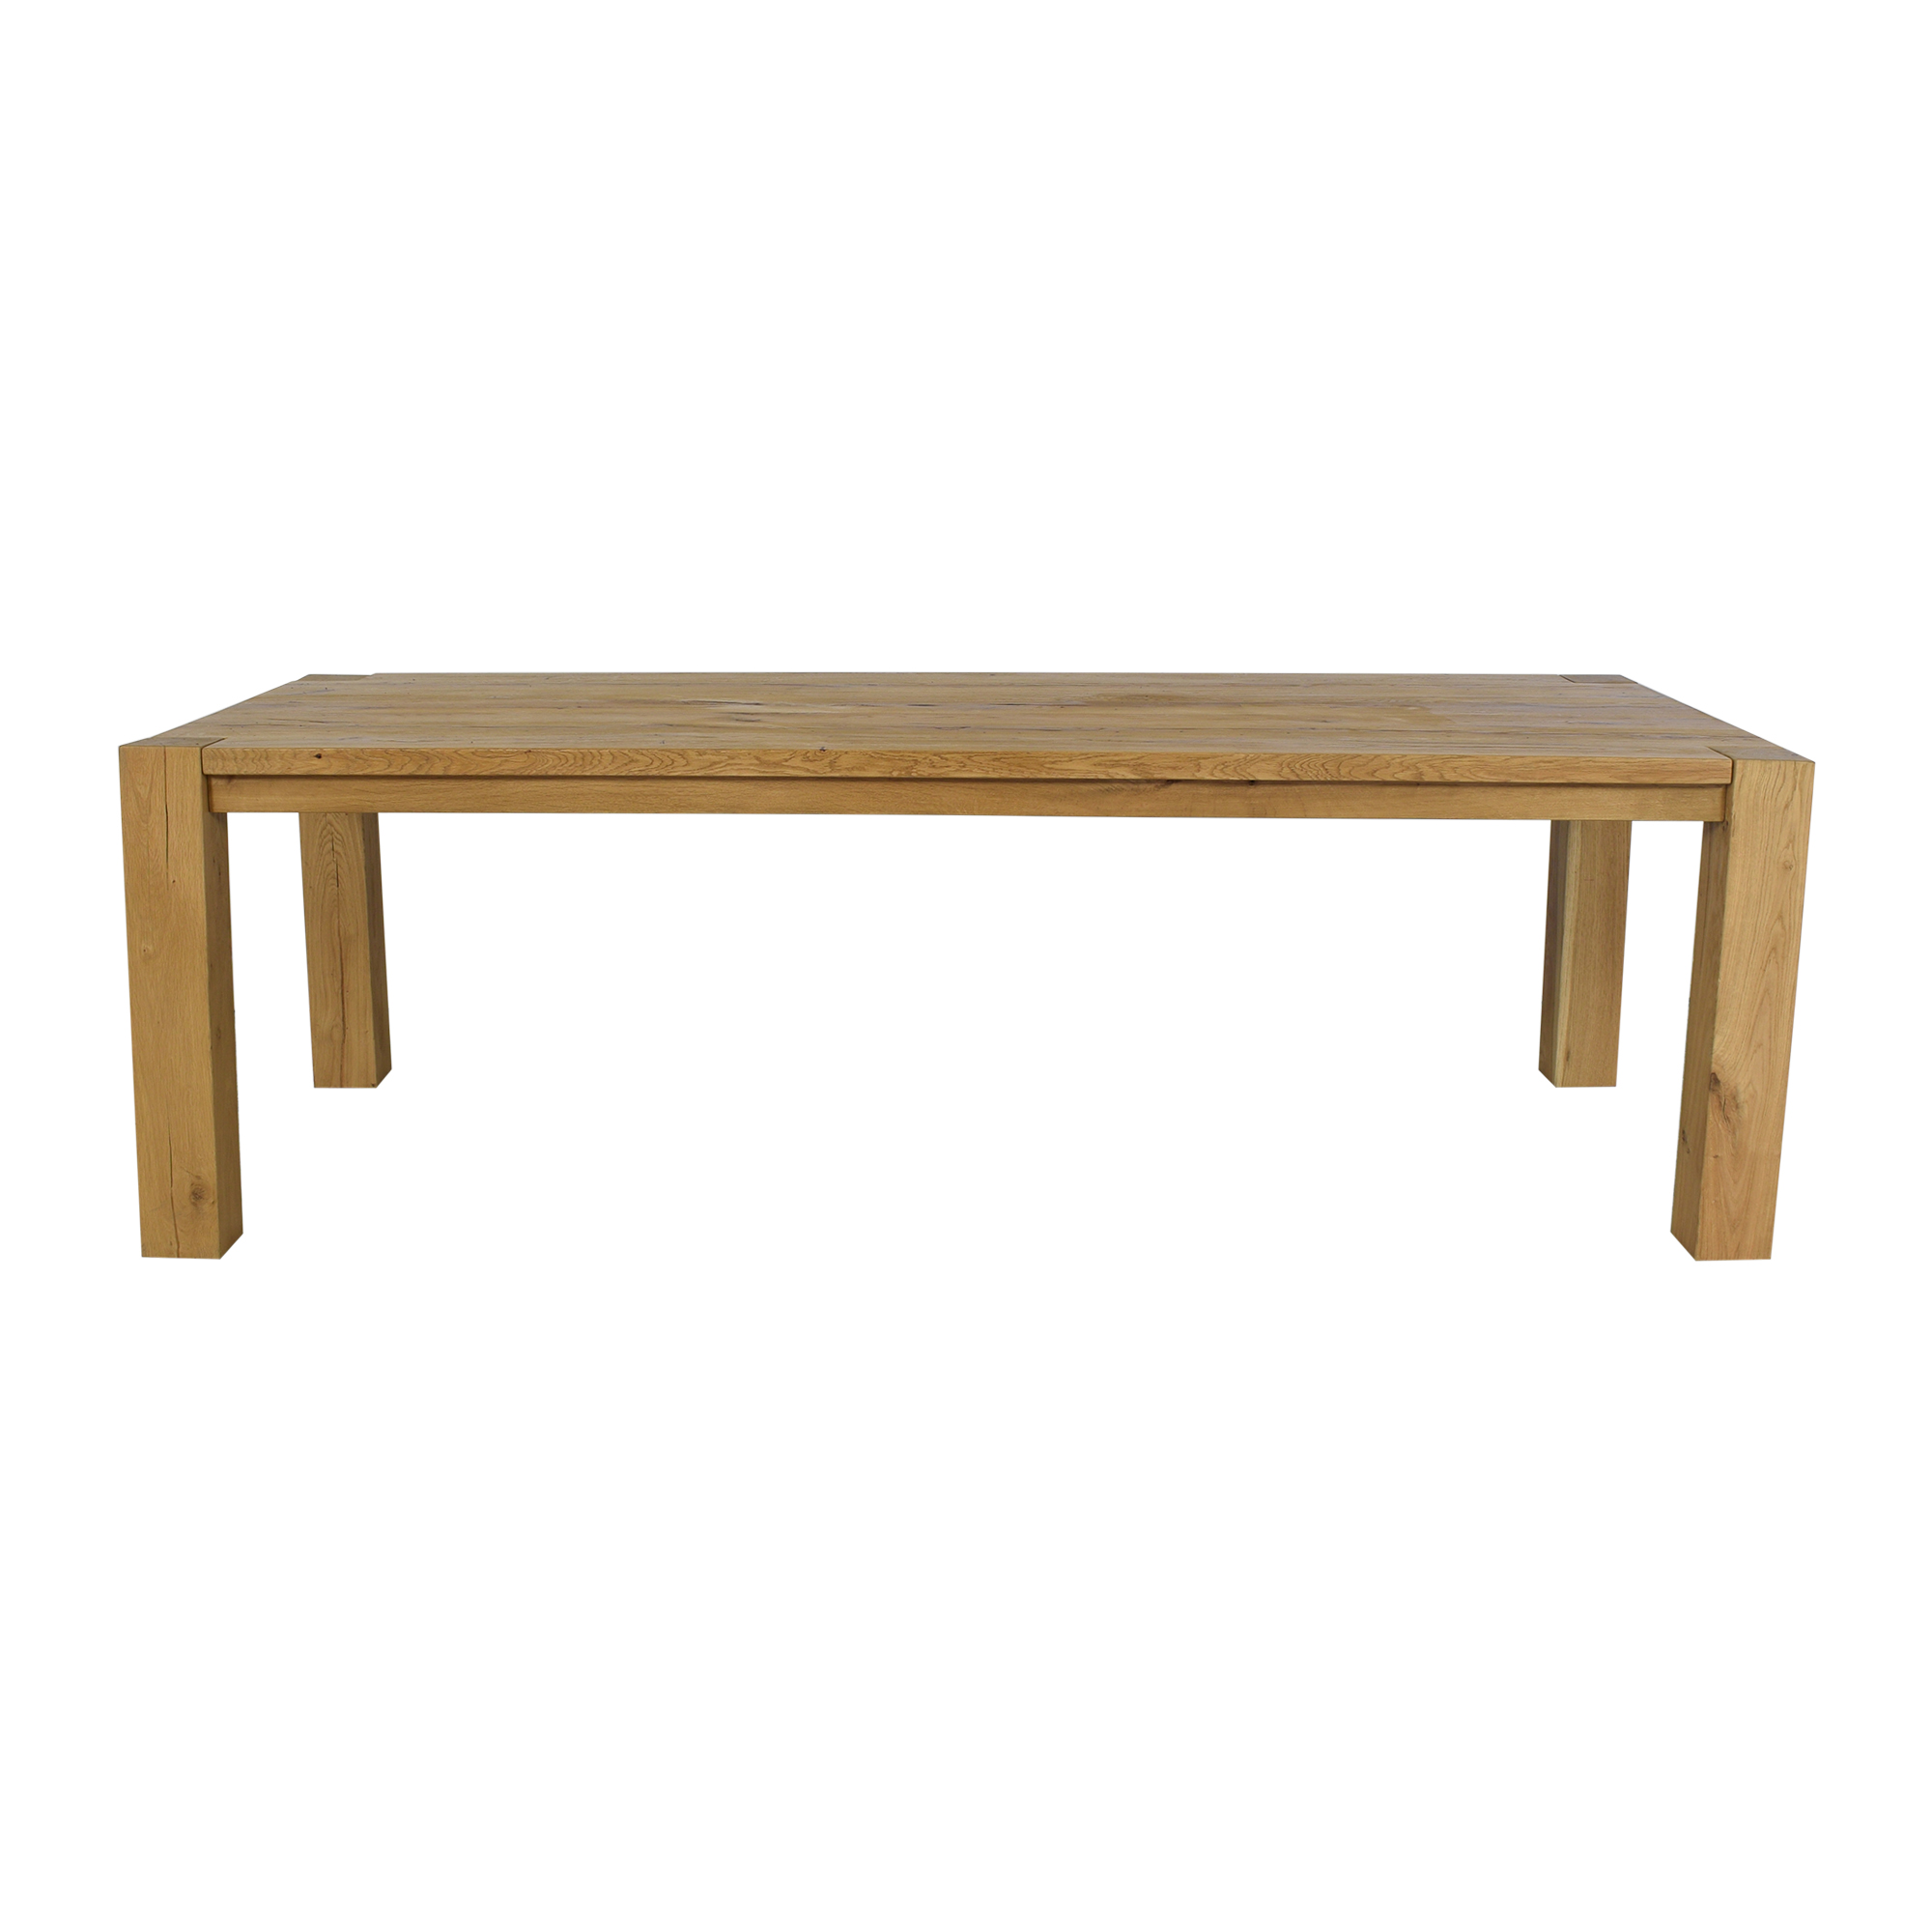 Restoration Hardware Restoration Hardware Reclaimed Russian Oak Parsons Rectangular Dining Table dimensions